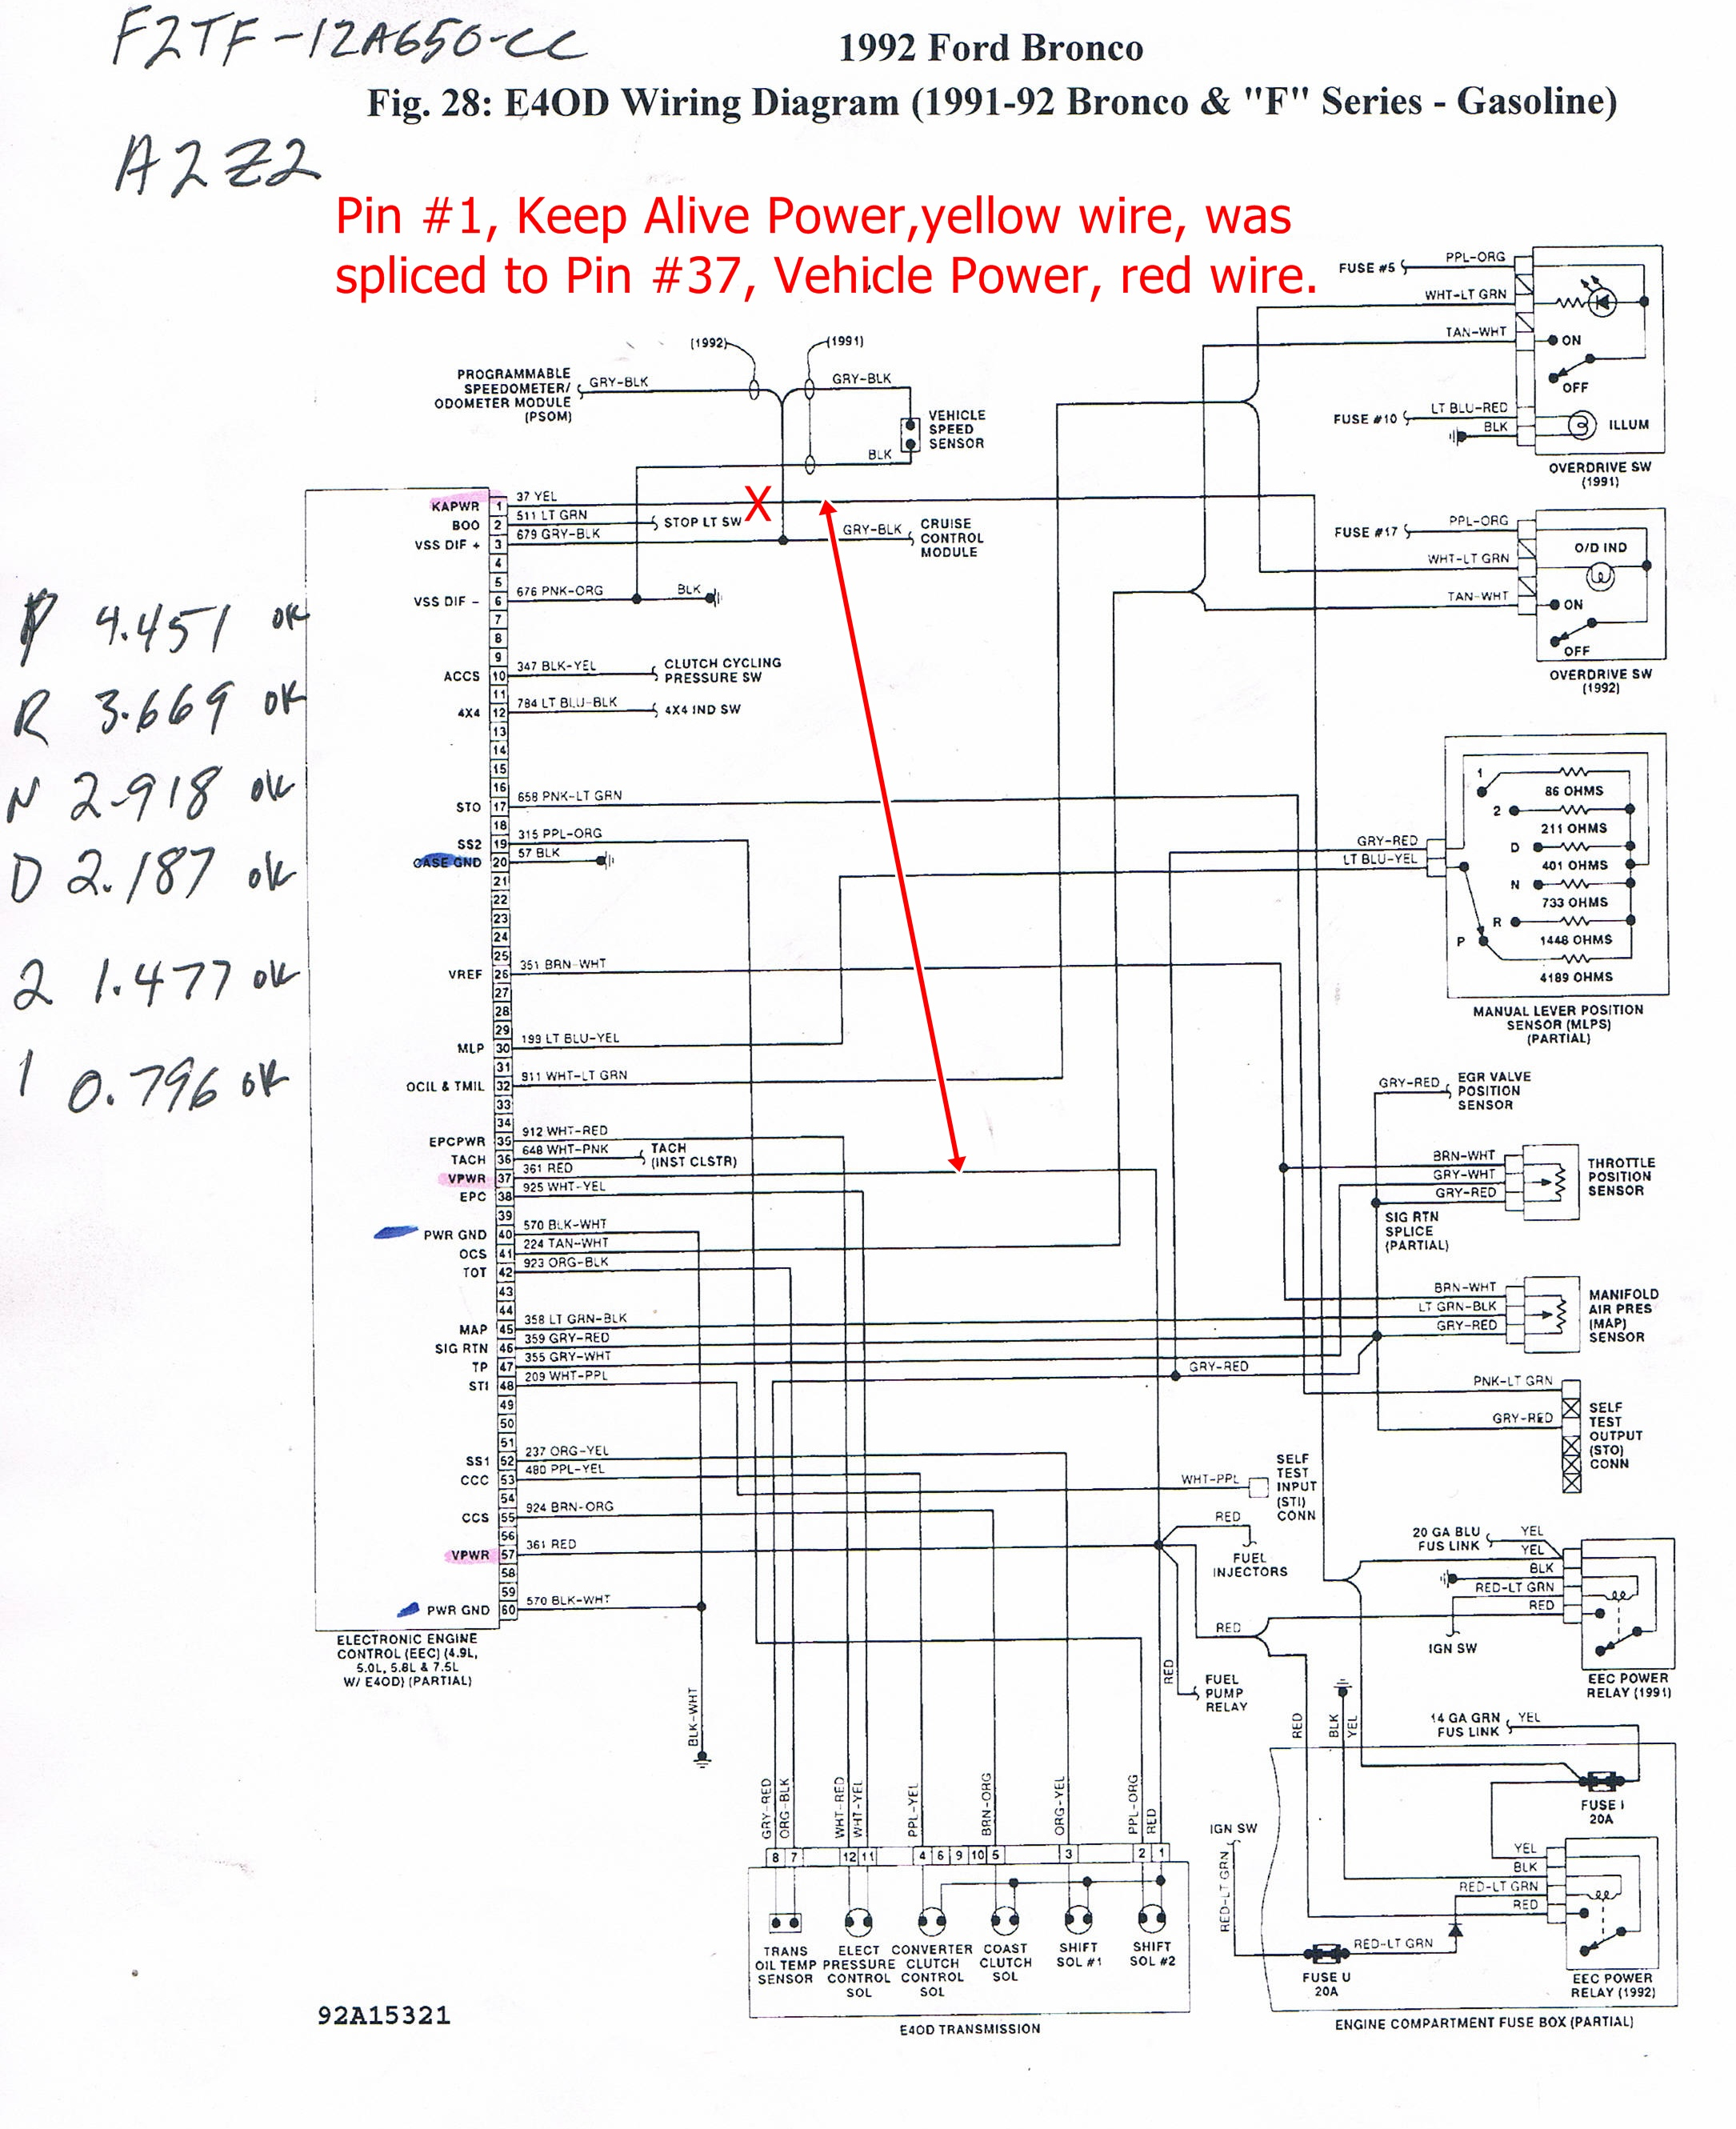 Lincoln Town Car Interior Fuse Box Map as well Lincoln Continental Wiring Diagram also Tcintfuses further Wire Diagram additionally Navigator Fuse Box. on 1999 lincoln town car fuse box diagram